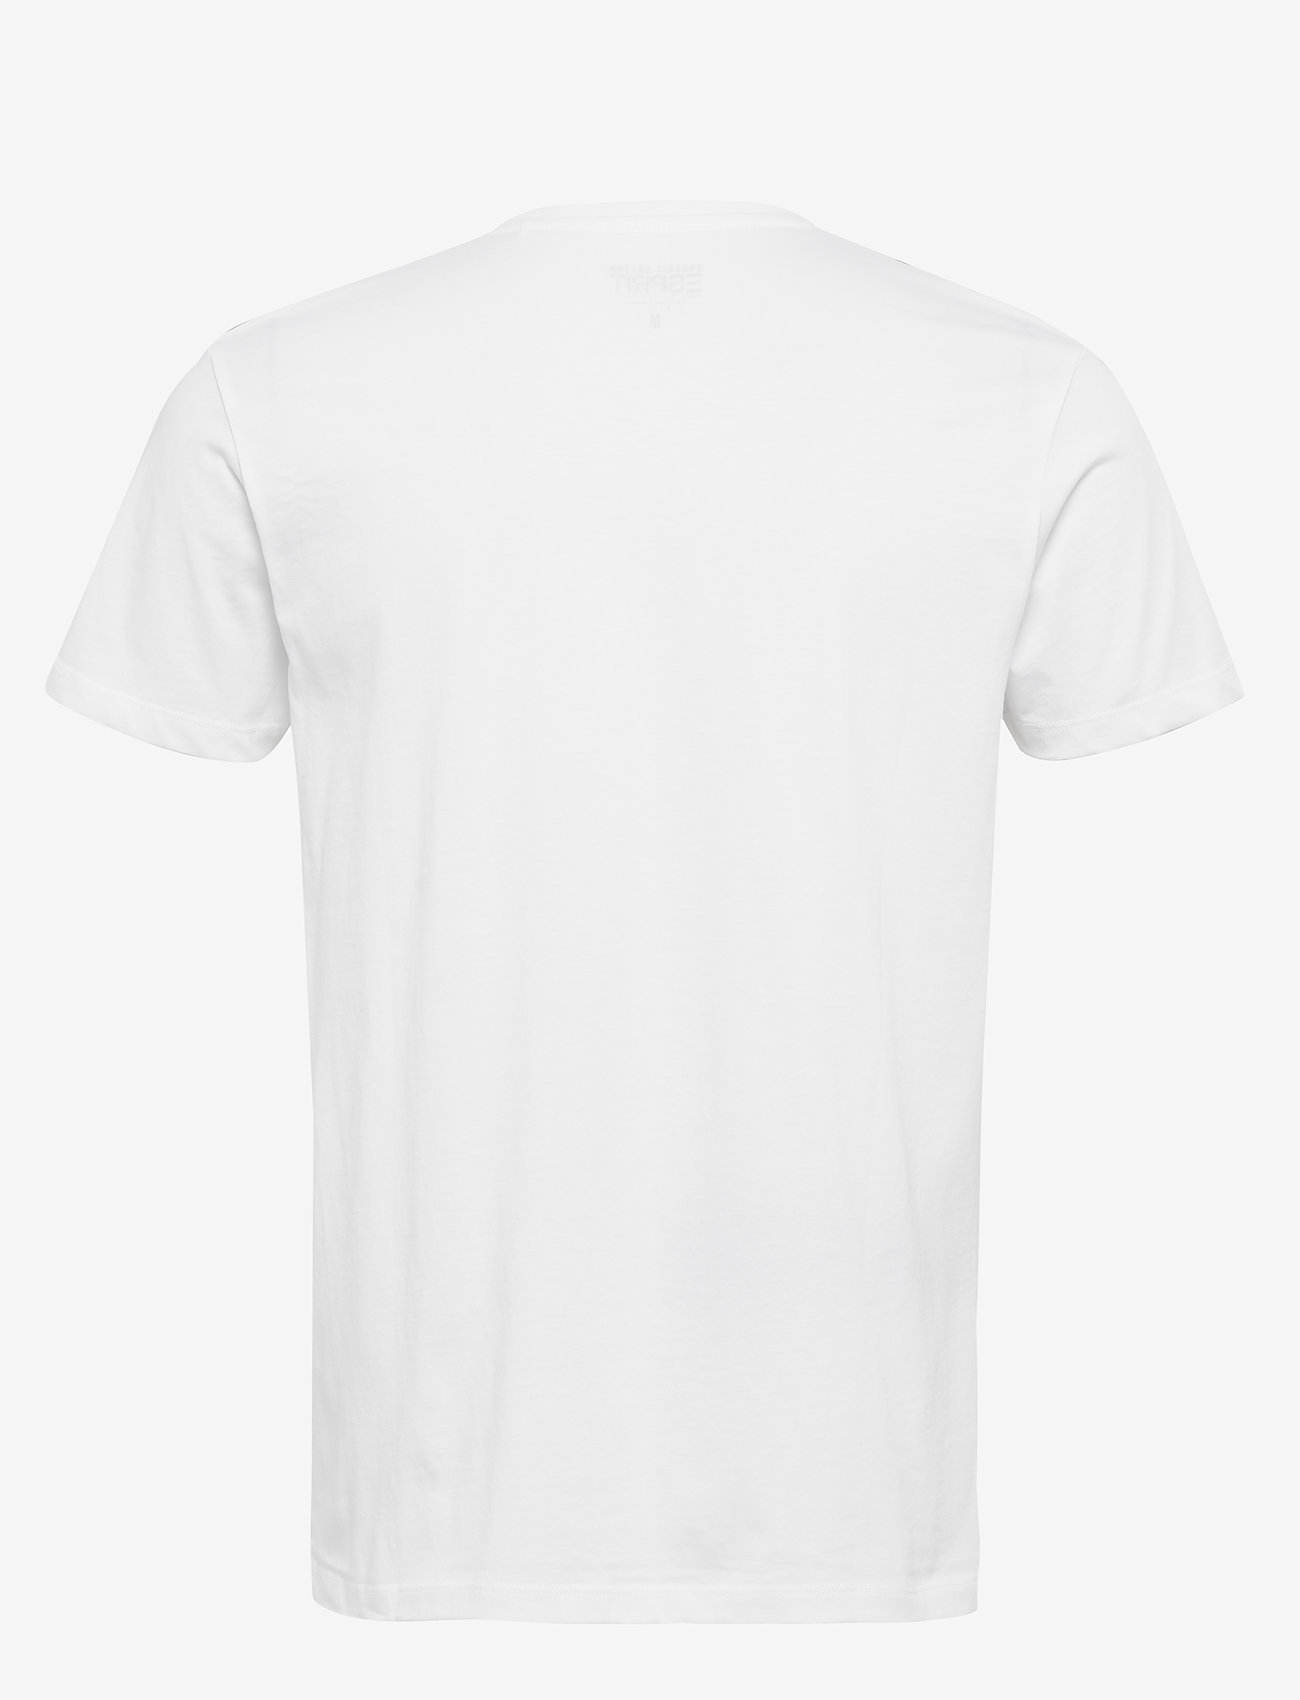 Esprit Casual - T-Shirts - basic t-shirts - white - 1